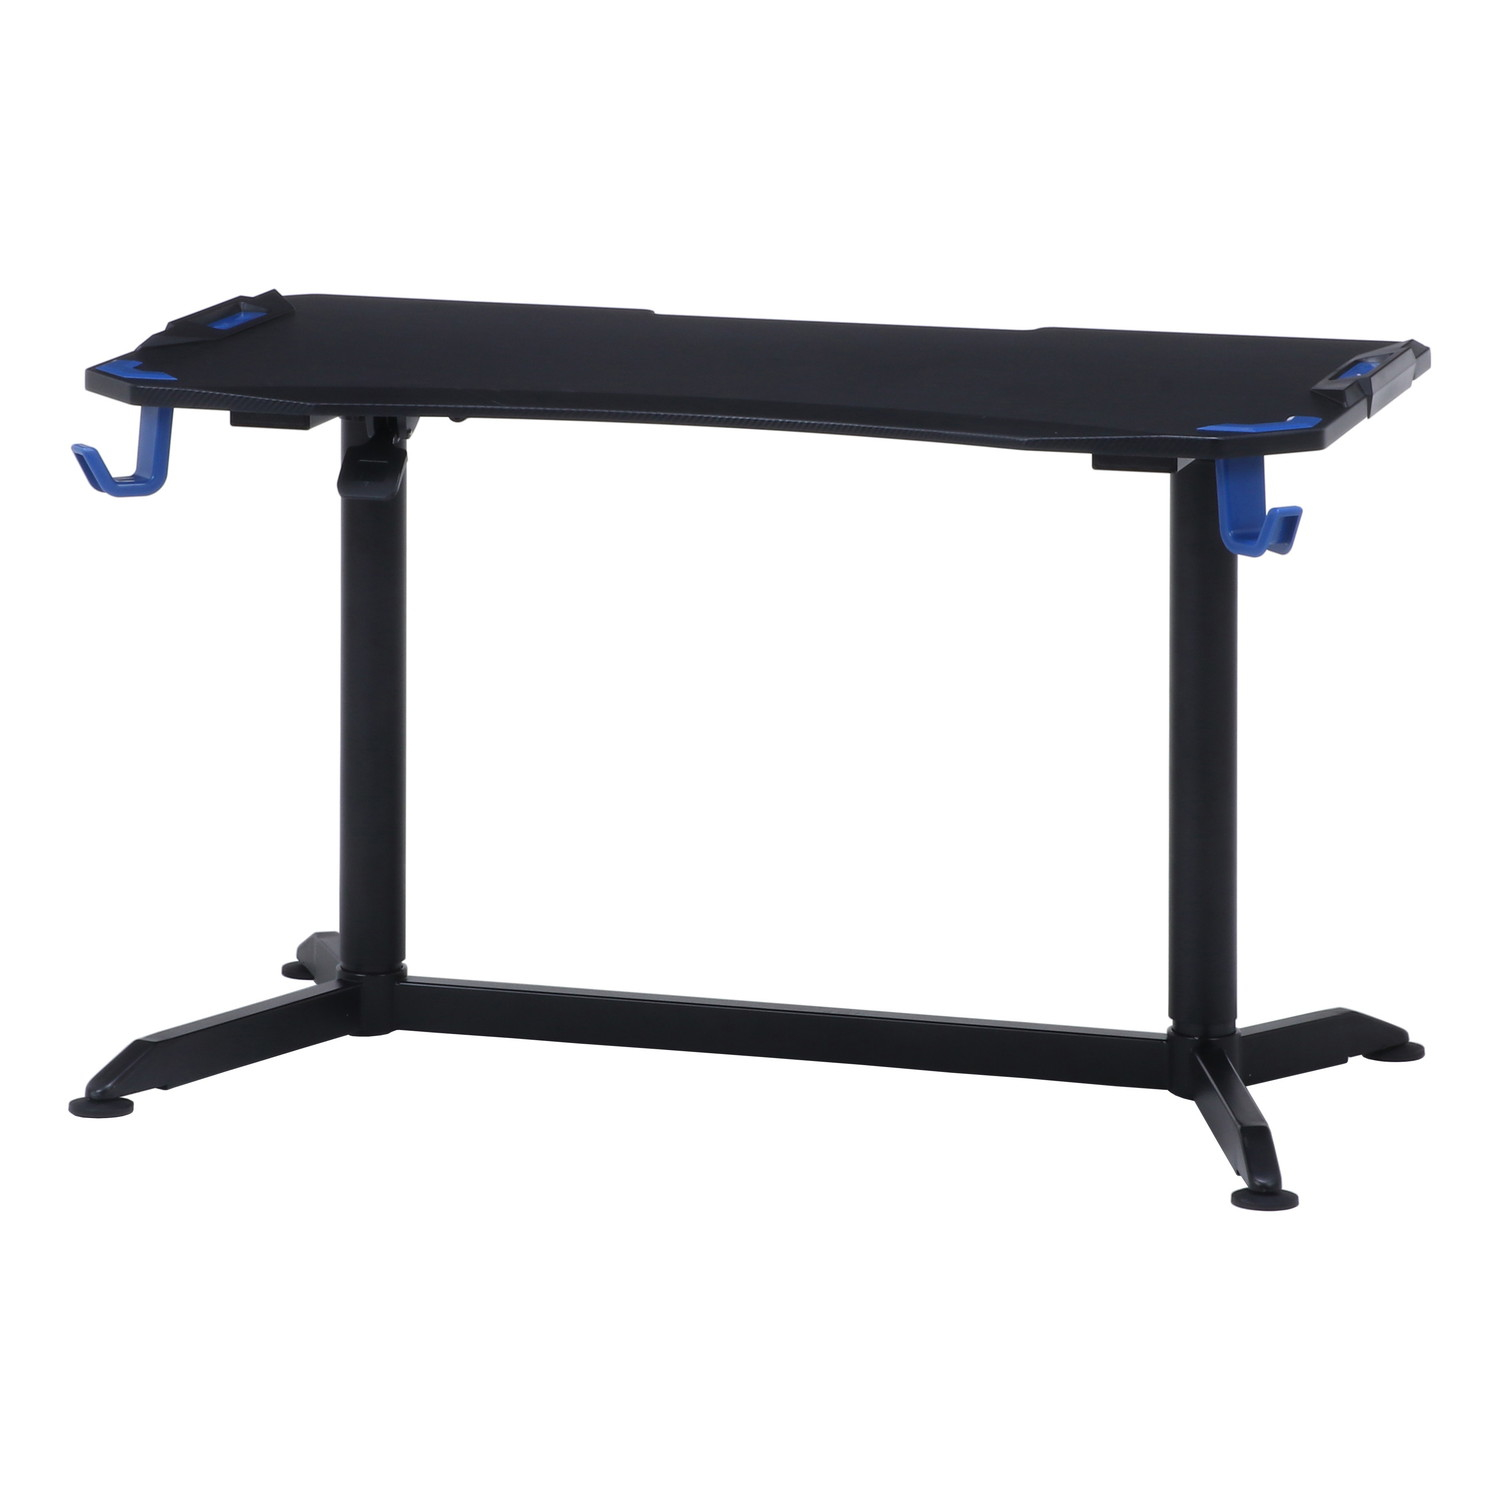 [C/D:38137] GAMING DESK XeNO(ゼノ) PRO-01 BLUE